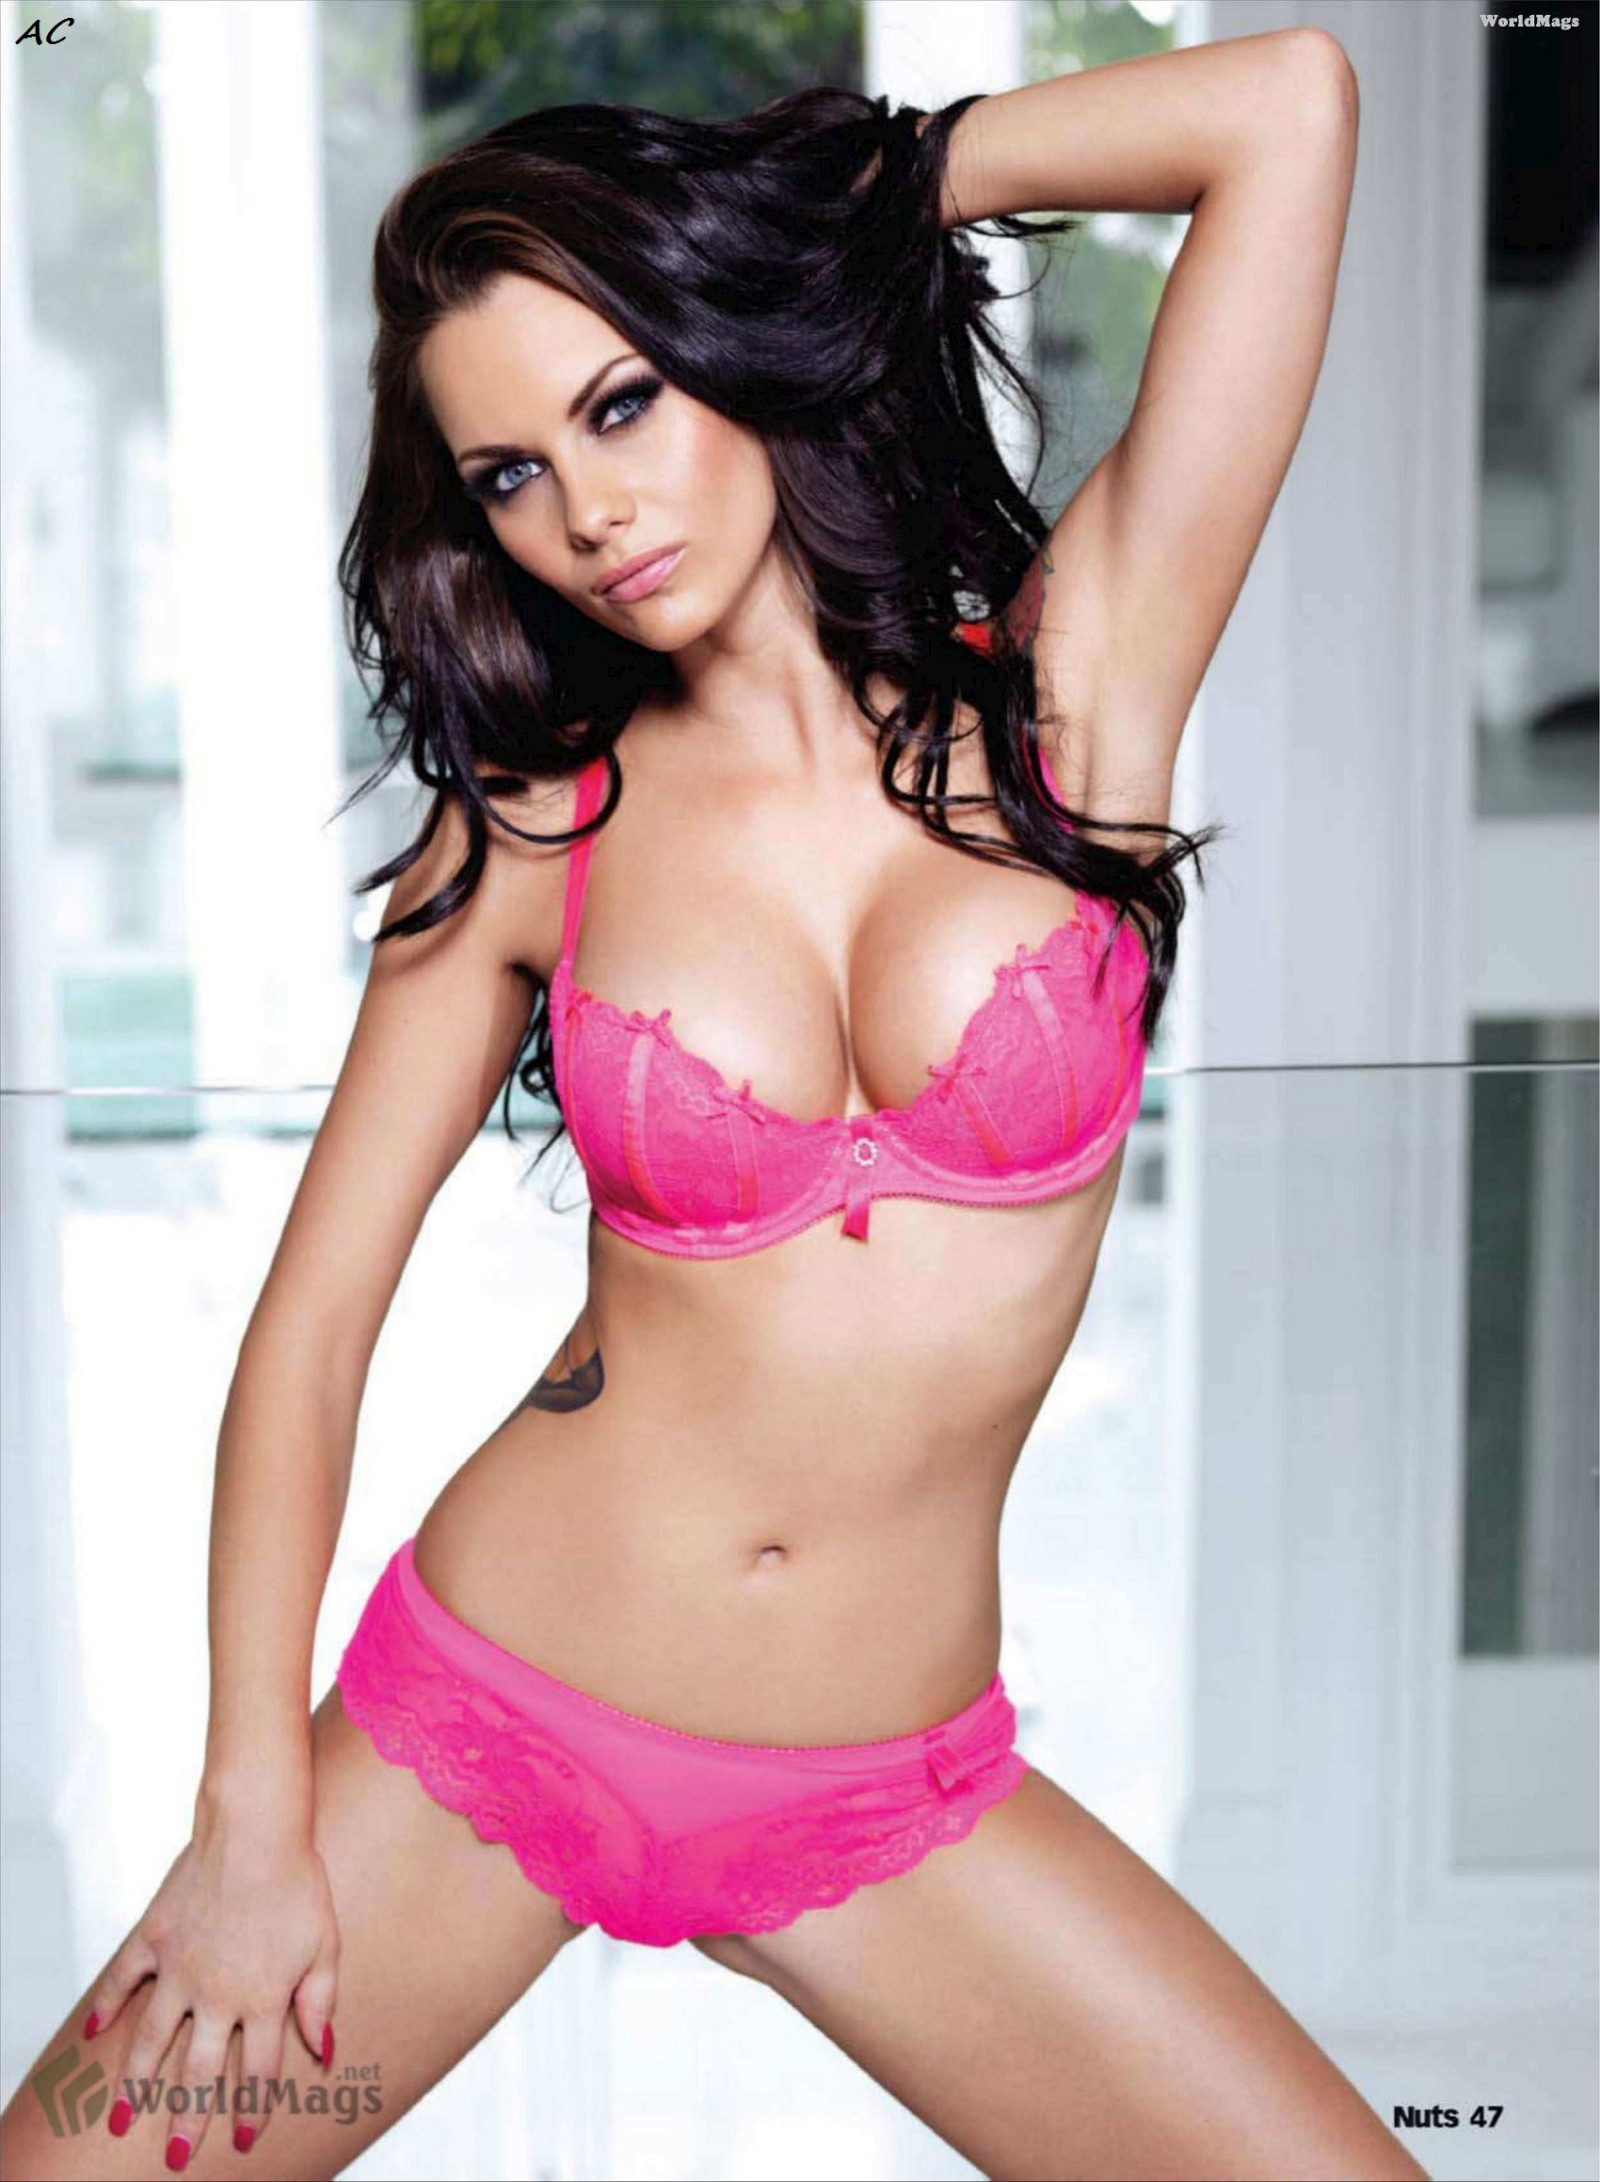 527387992_tduid2346_Jessica_Jane_Clement_Nuts_Kanoni_4_122_245lo.jpg